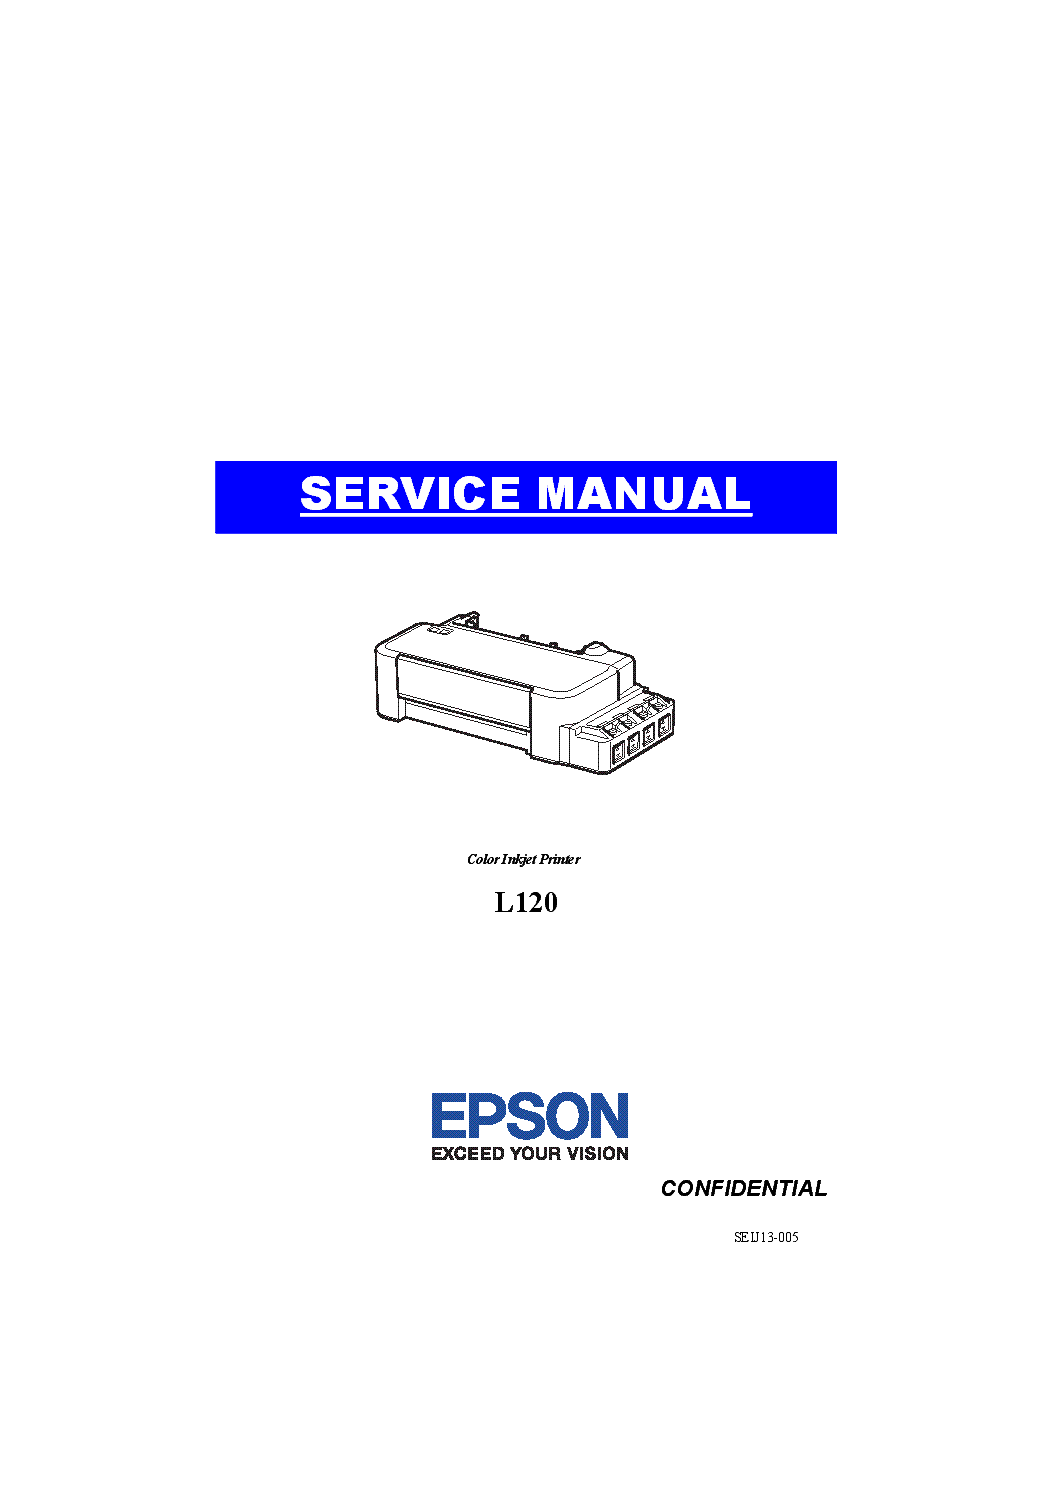 EPSON COLOR INKJET L120 SM Service Manual download